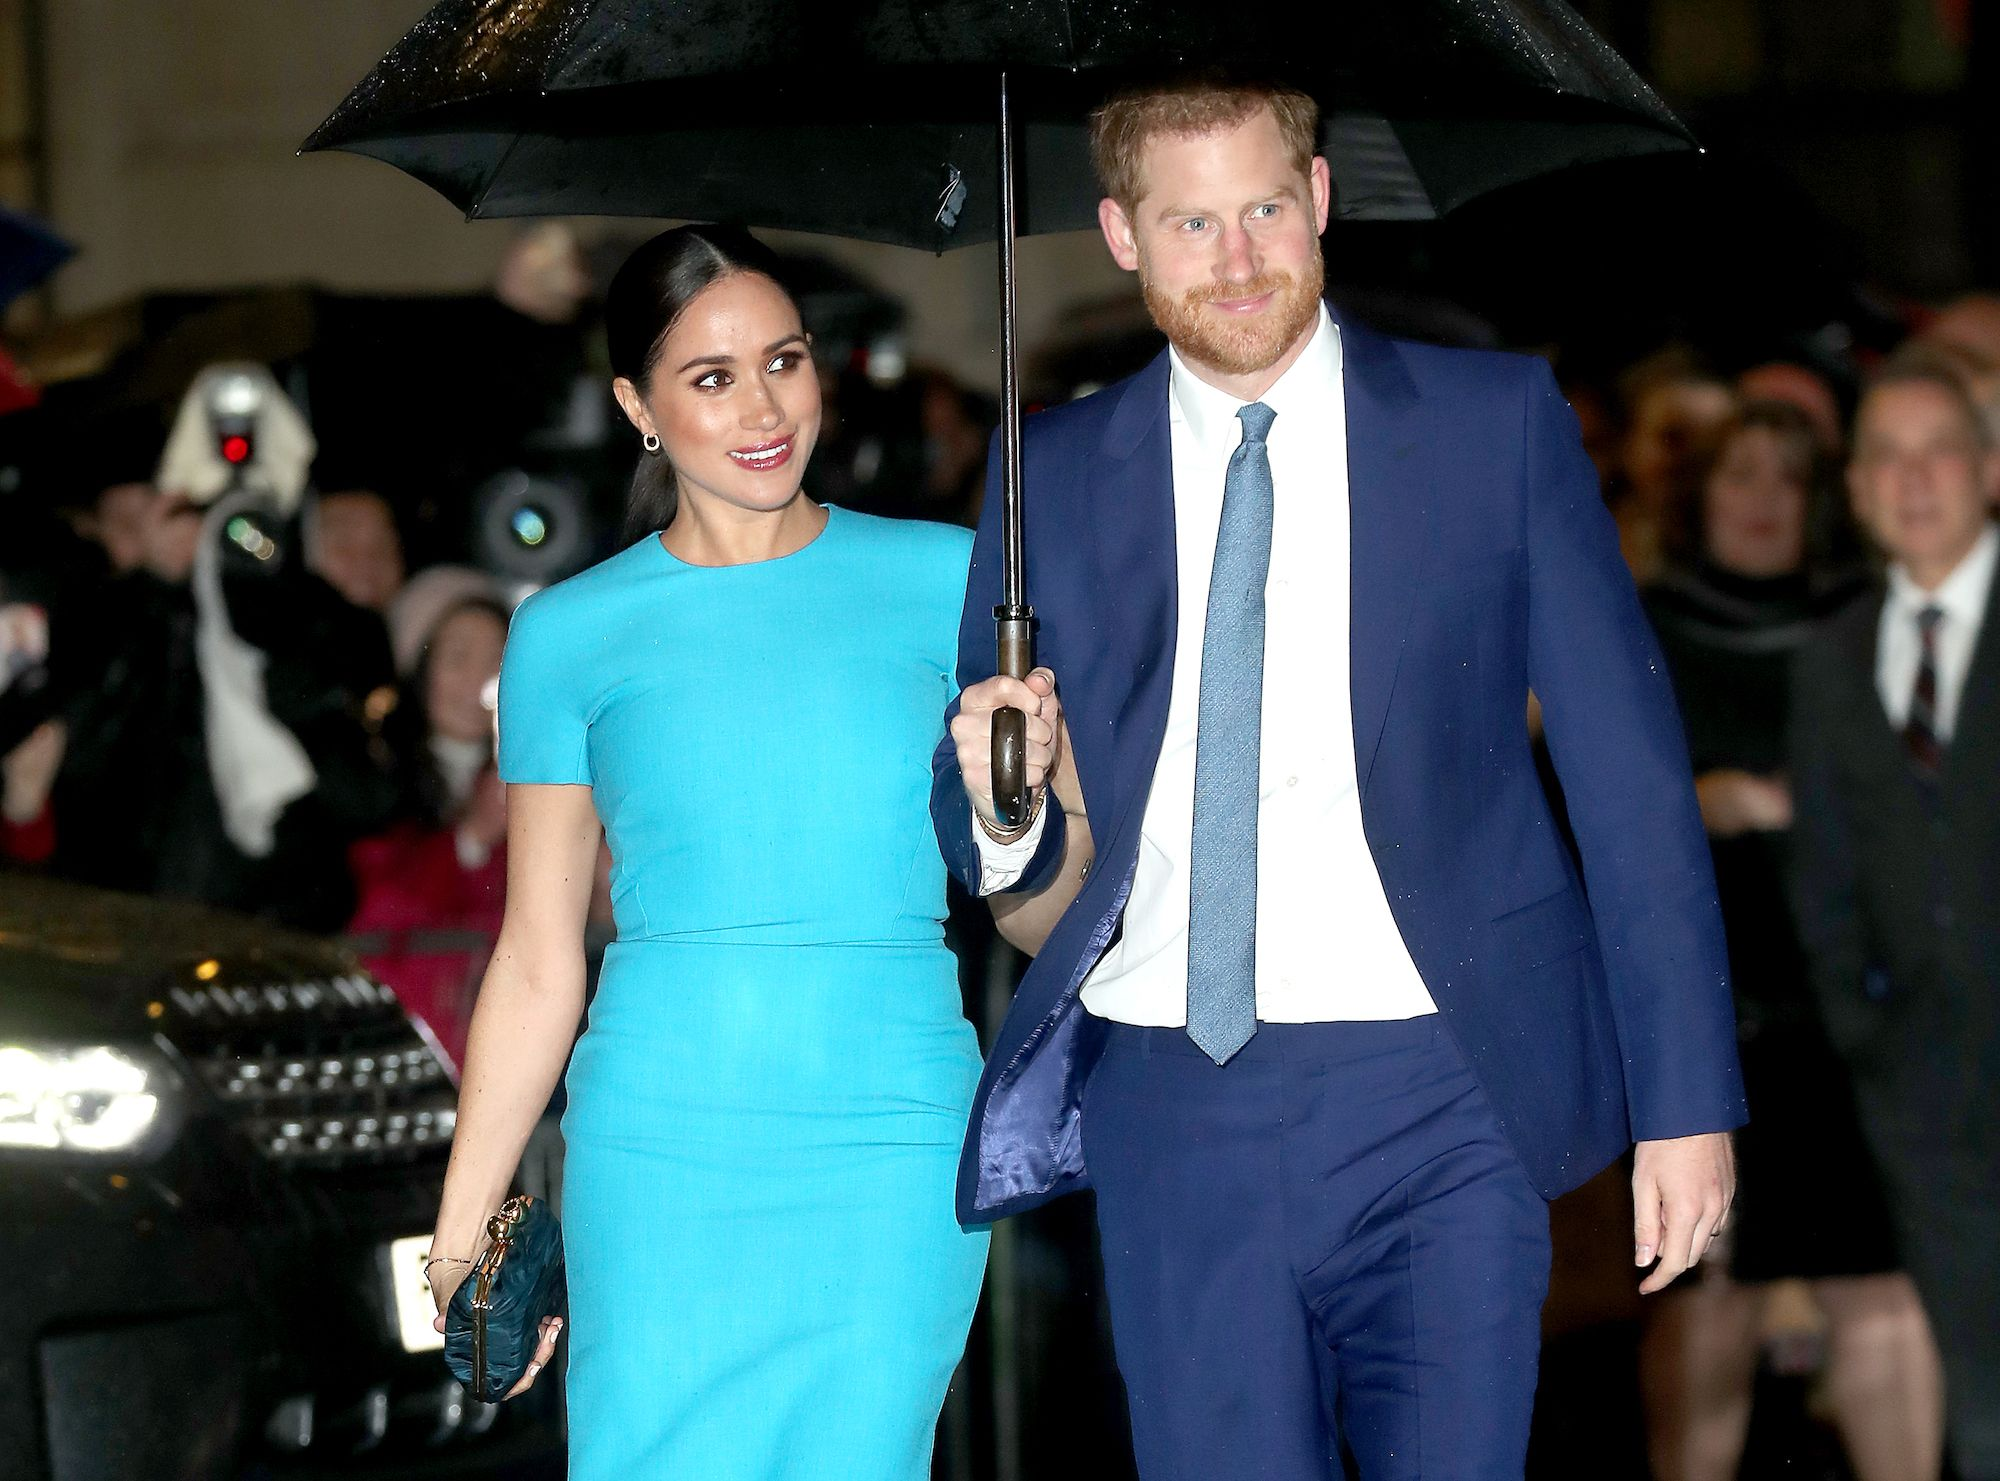 Prince Harry And Meghan Markle Spent Last Week Volunteering At A Local Charity In West Hollywood